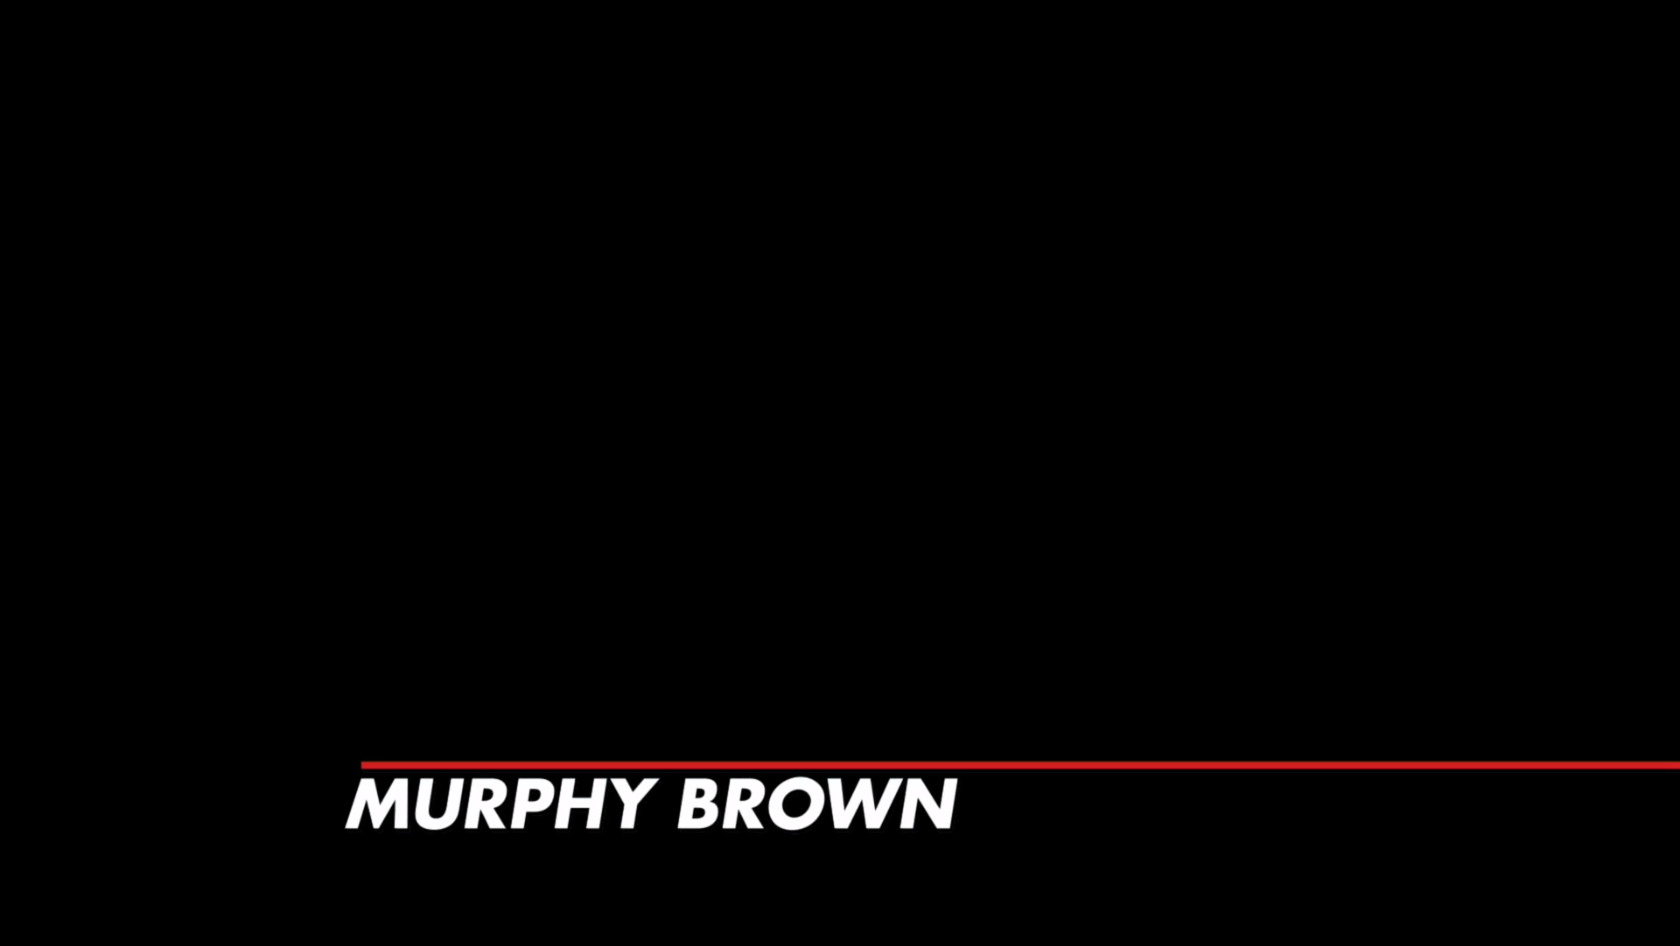 Murphy Brown - Wikipedia